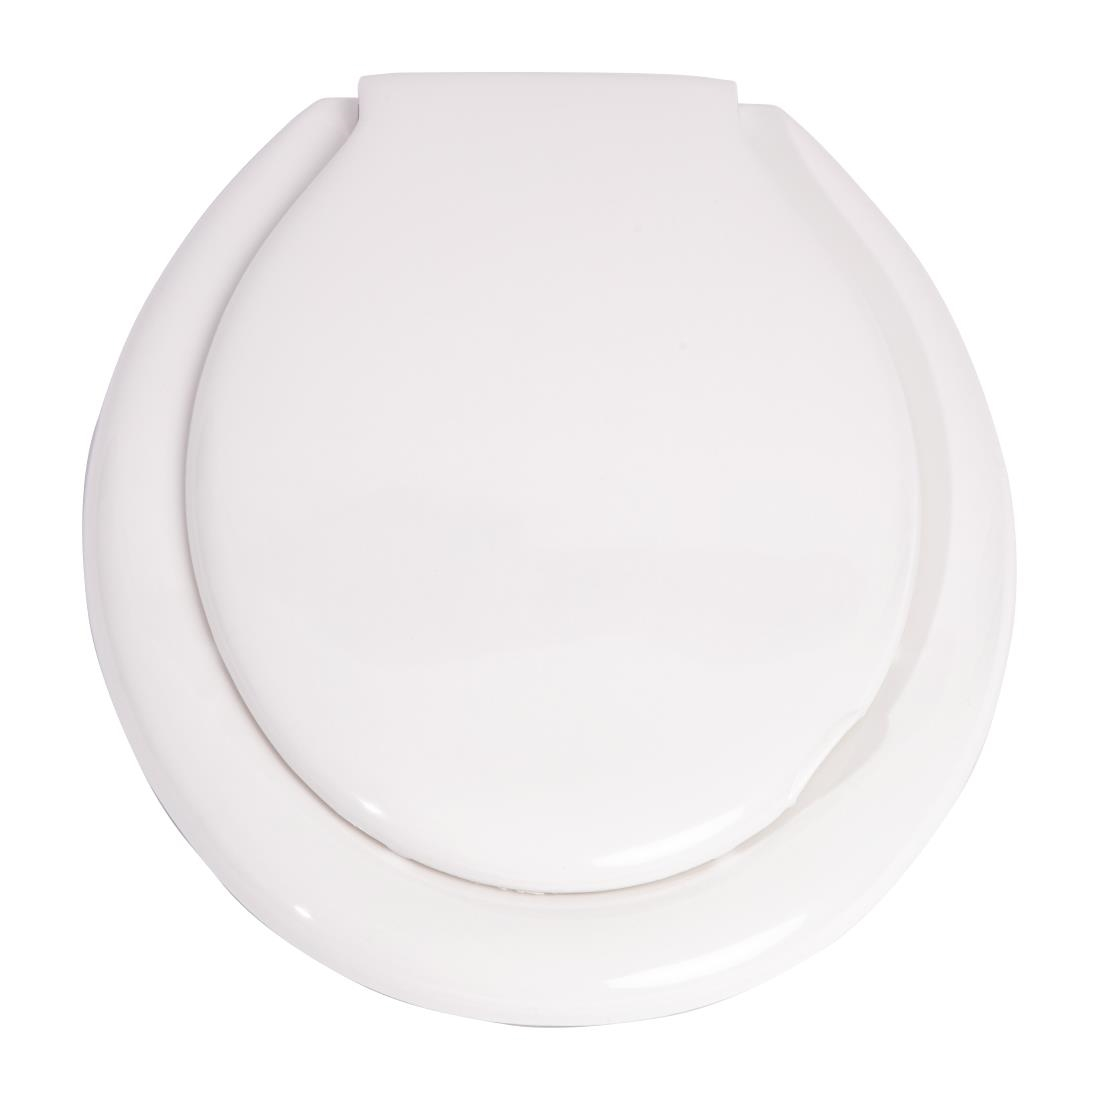 Image of Carrara and Matta York Lightweight Soft-Close STA-TITE Toilet Seat